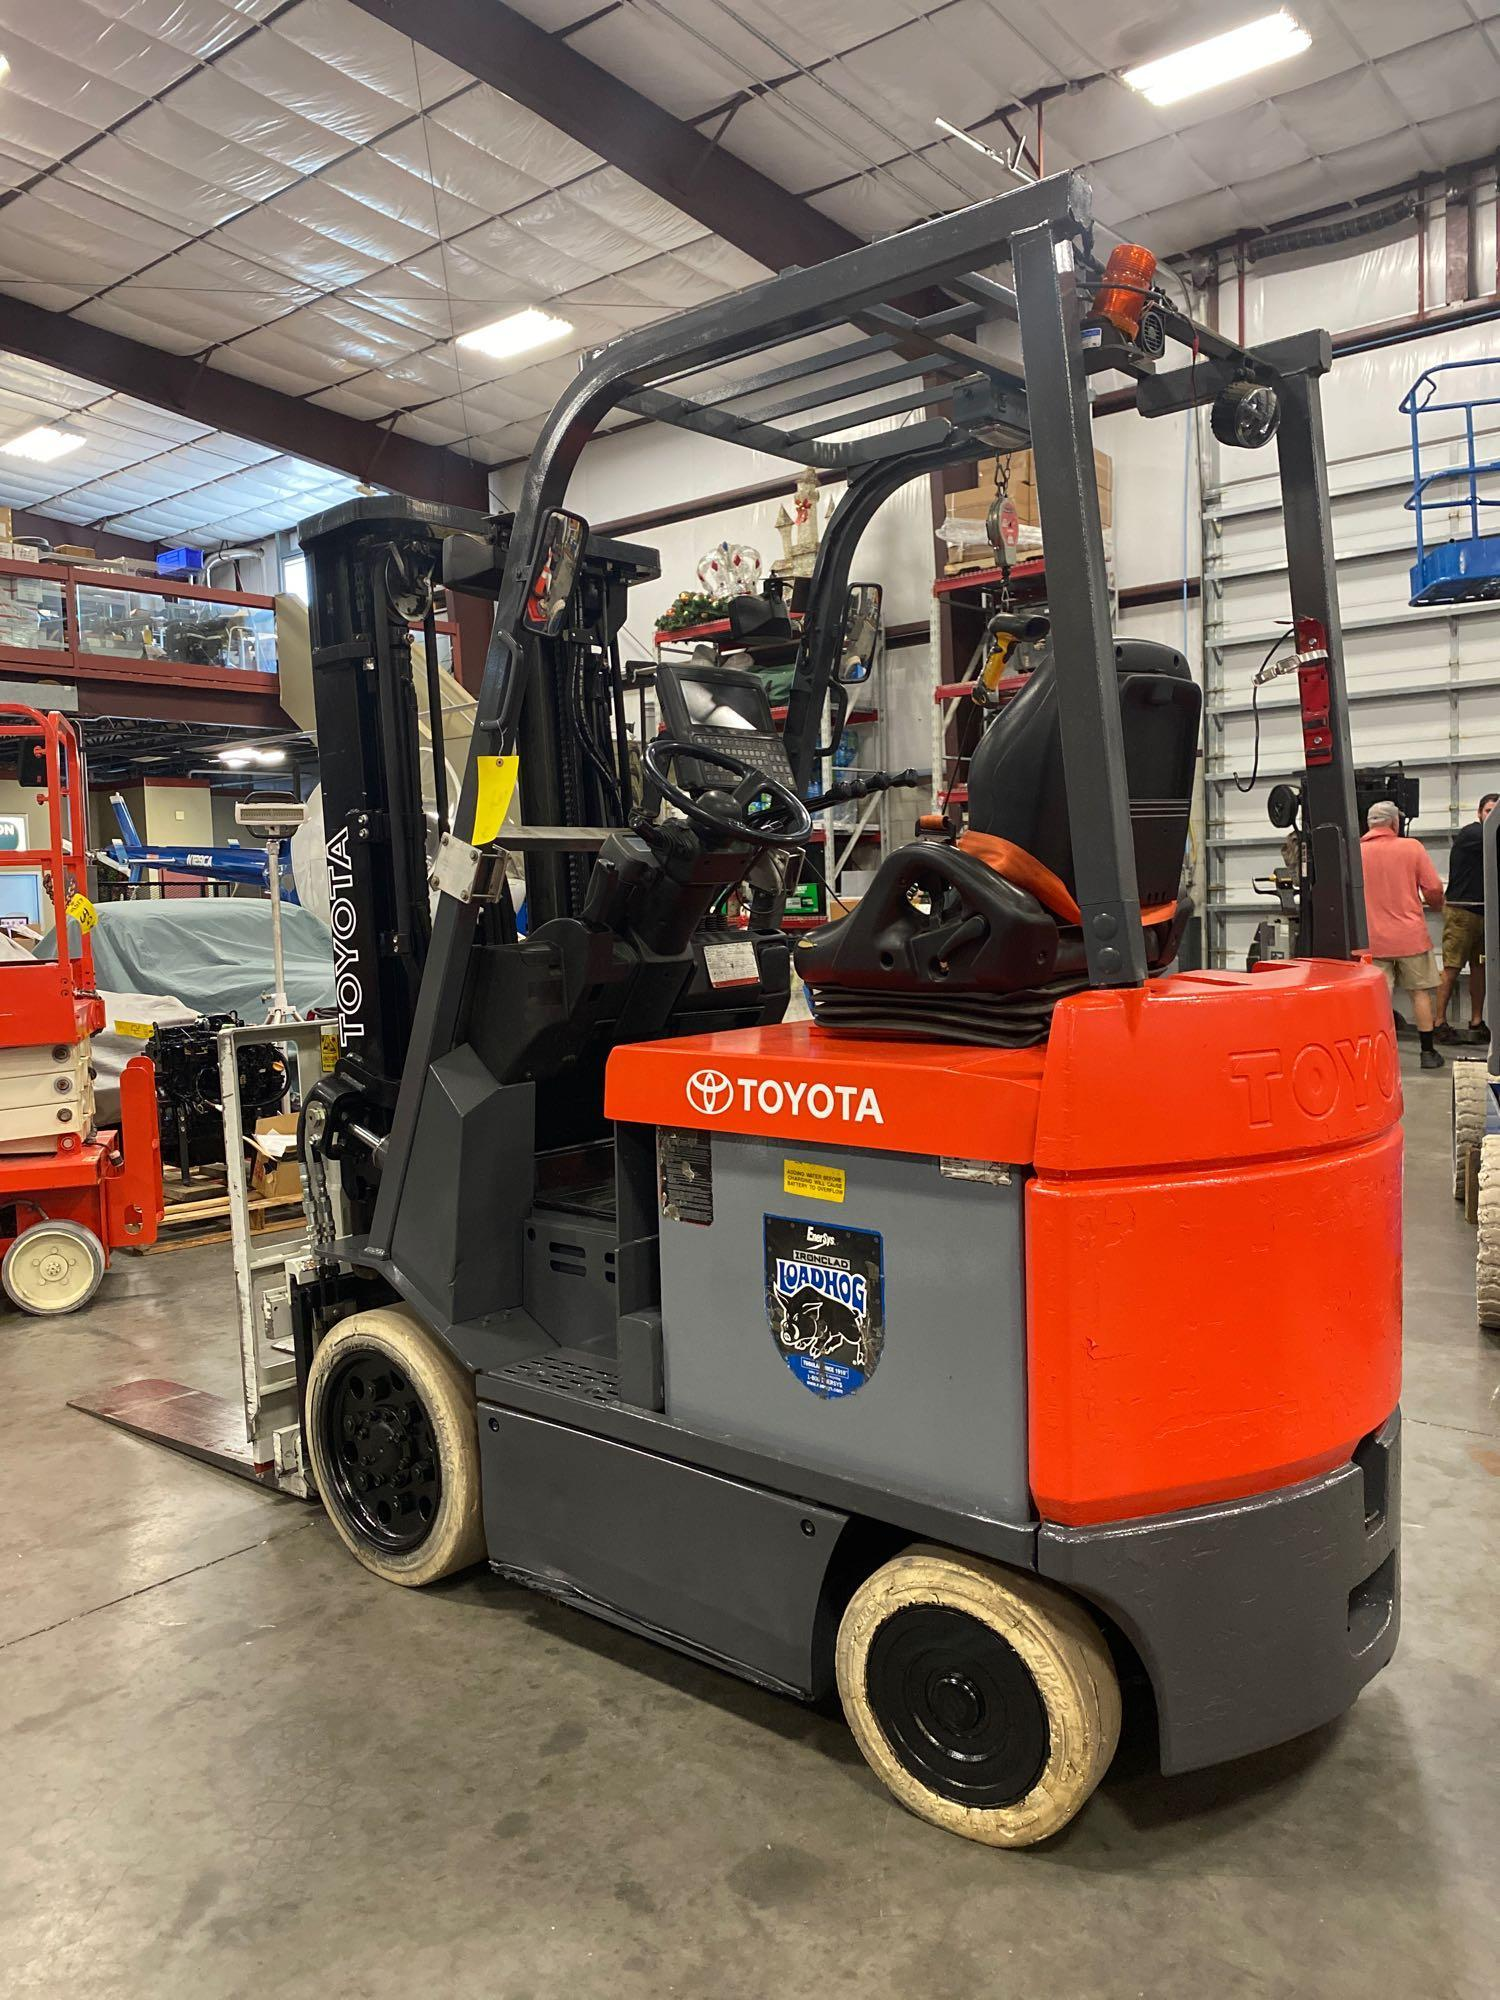 """TOYOTA ELECTRIC FORKLIFT MODEL 7FBCU25, 189"""" HEIGHT CAPACITY, TILT, SIDESHIFT, 36V, RUNS AND OPERATE - Image 4 of 11"""